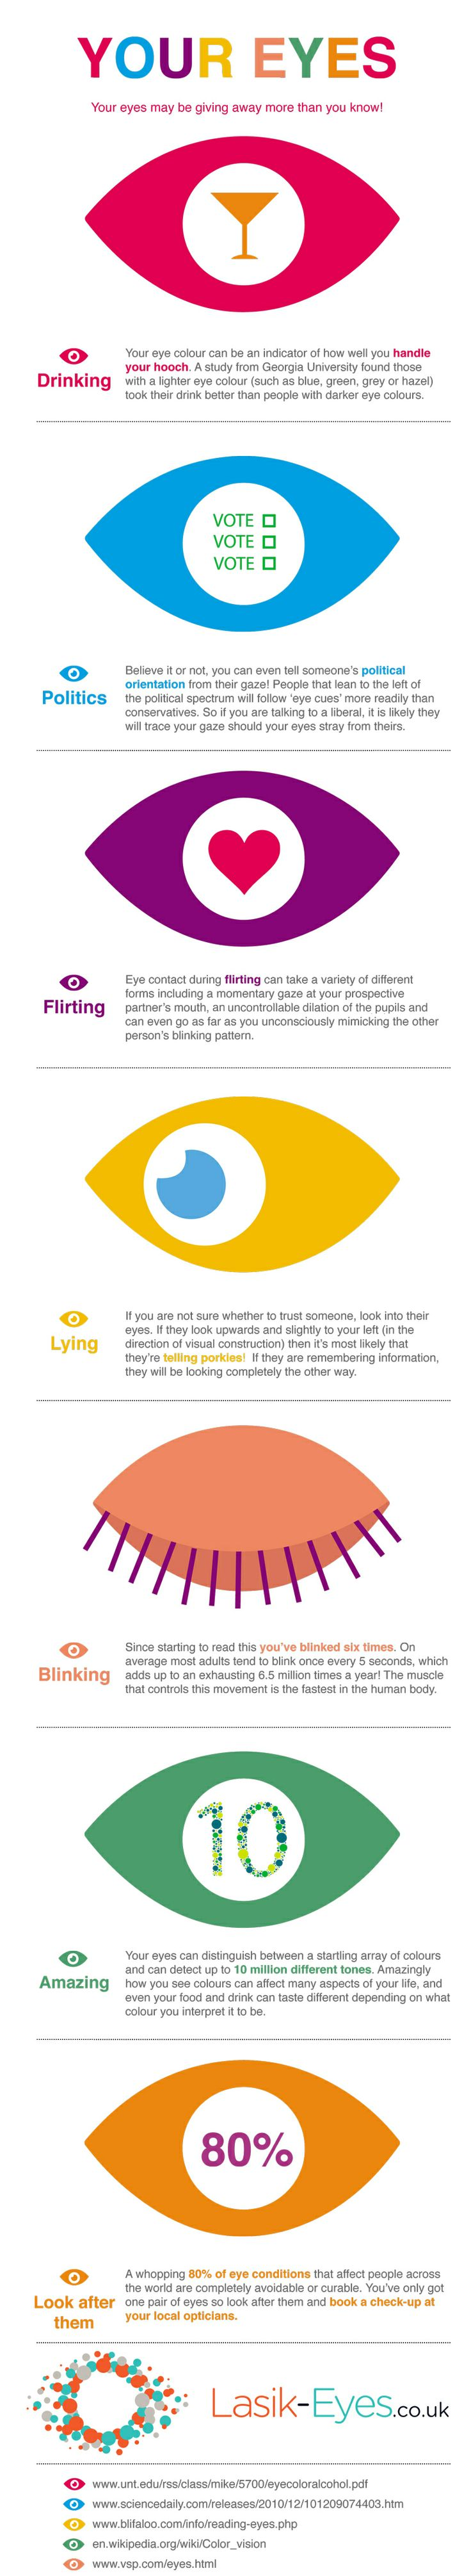 146 best lenses images on pinterest eye facts eye and eyes 7 amazing facts about your eyes is an infographic which looks at some of the less know but nonetheless amazing eye facts fandeluxe Choice Image